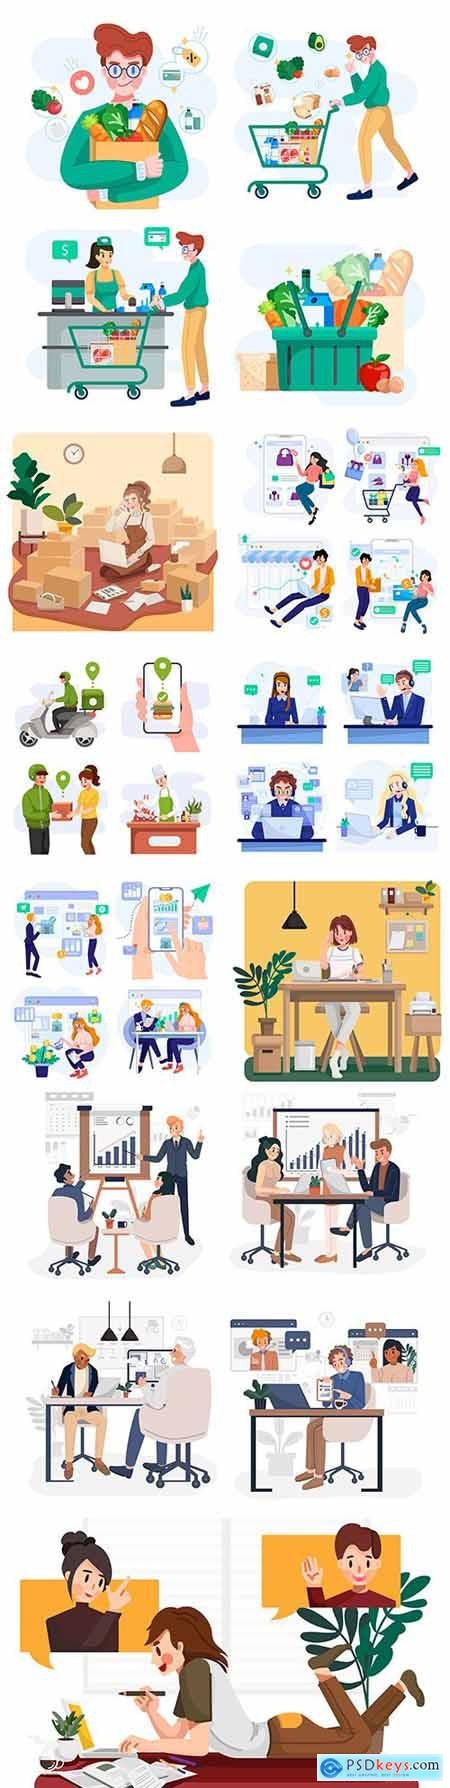 Business people in different settings concept illustration